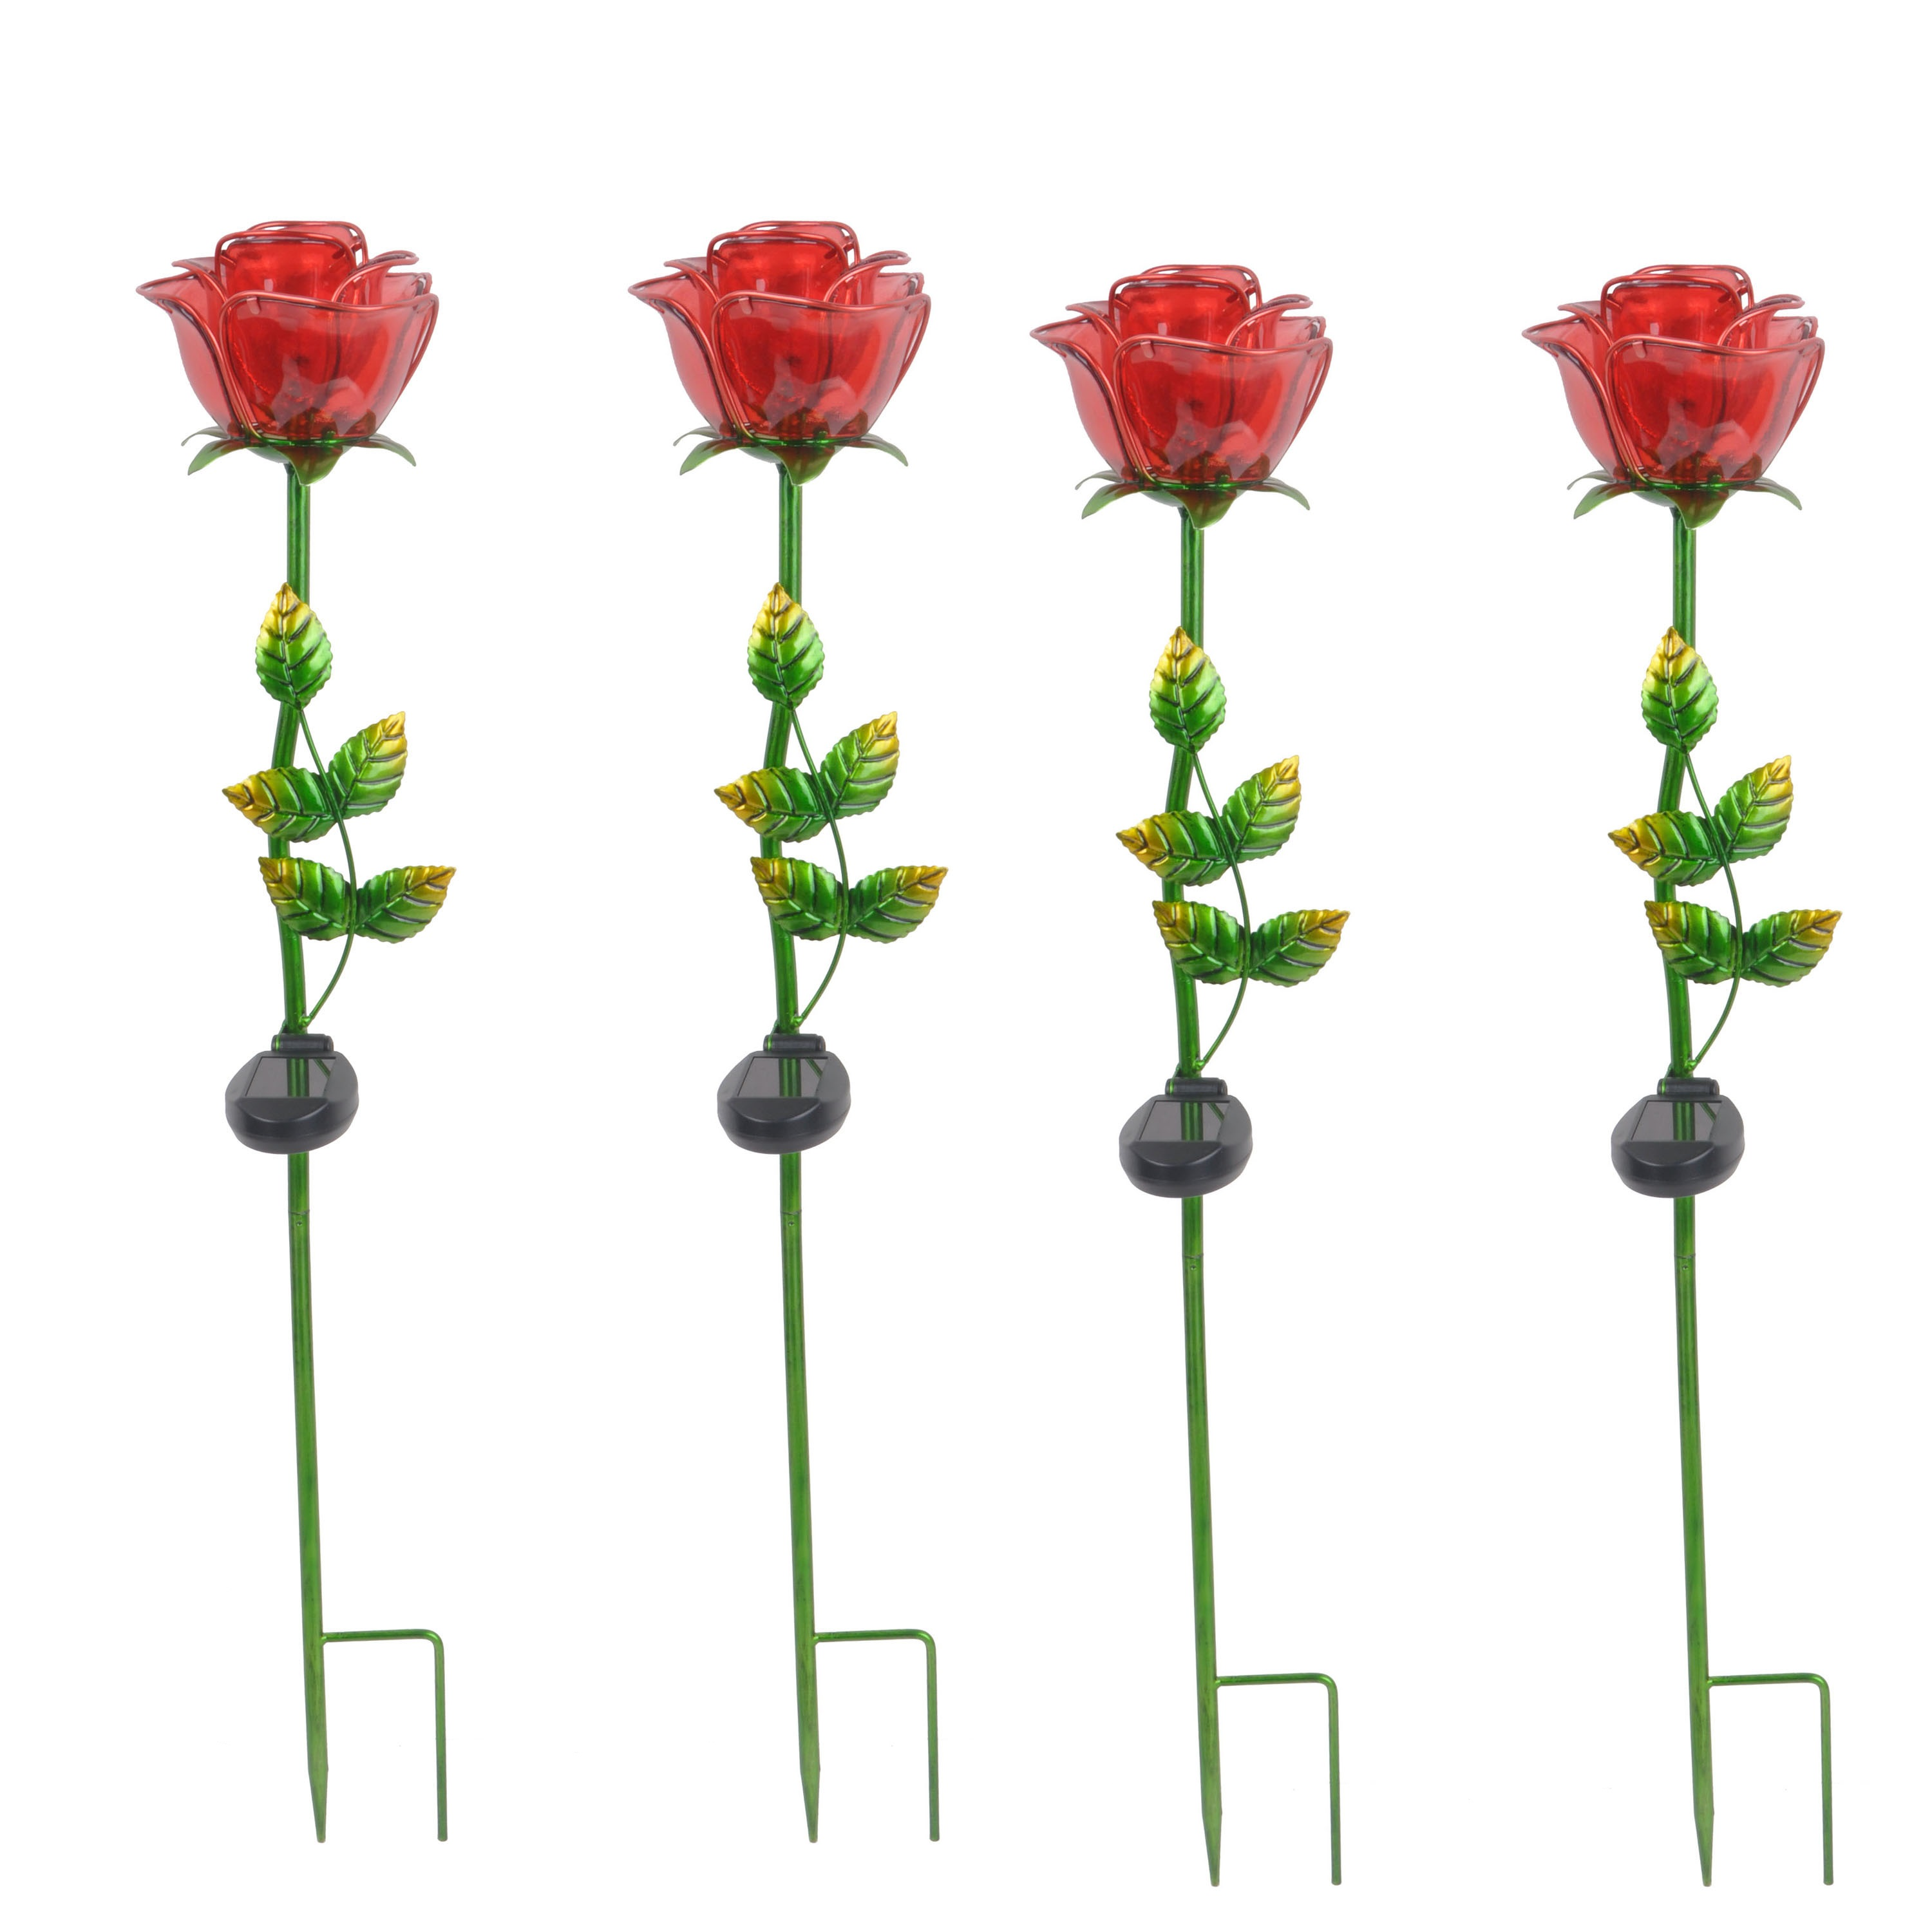 Better Homes & Gardens Outdoor Solar Rose Garden Stake - Set of 4